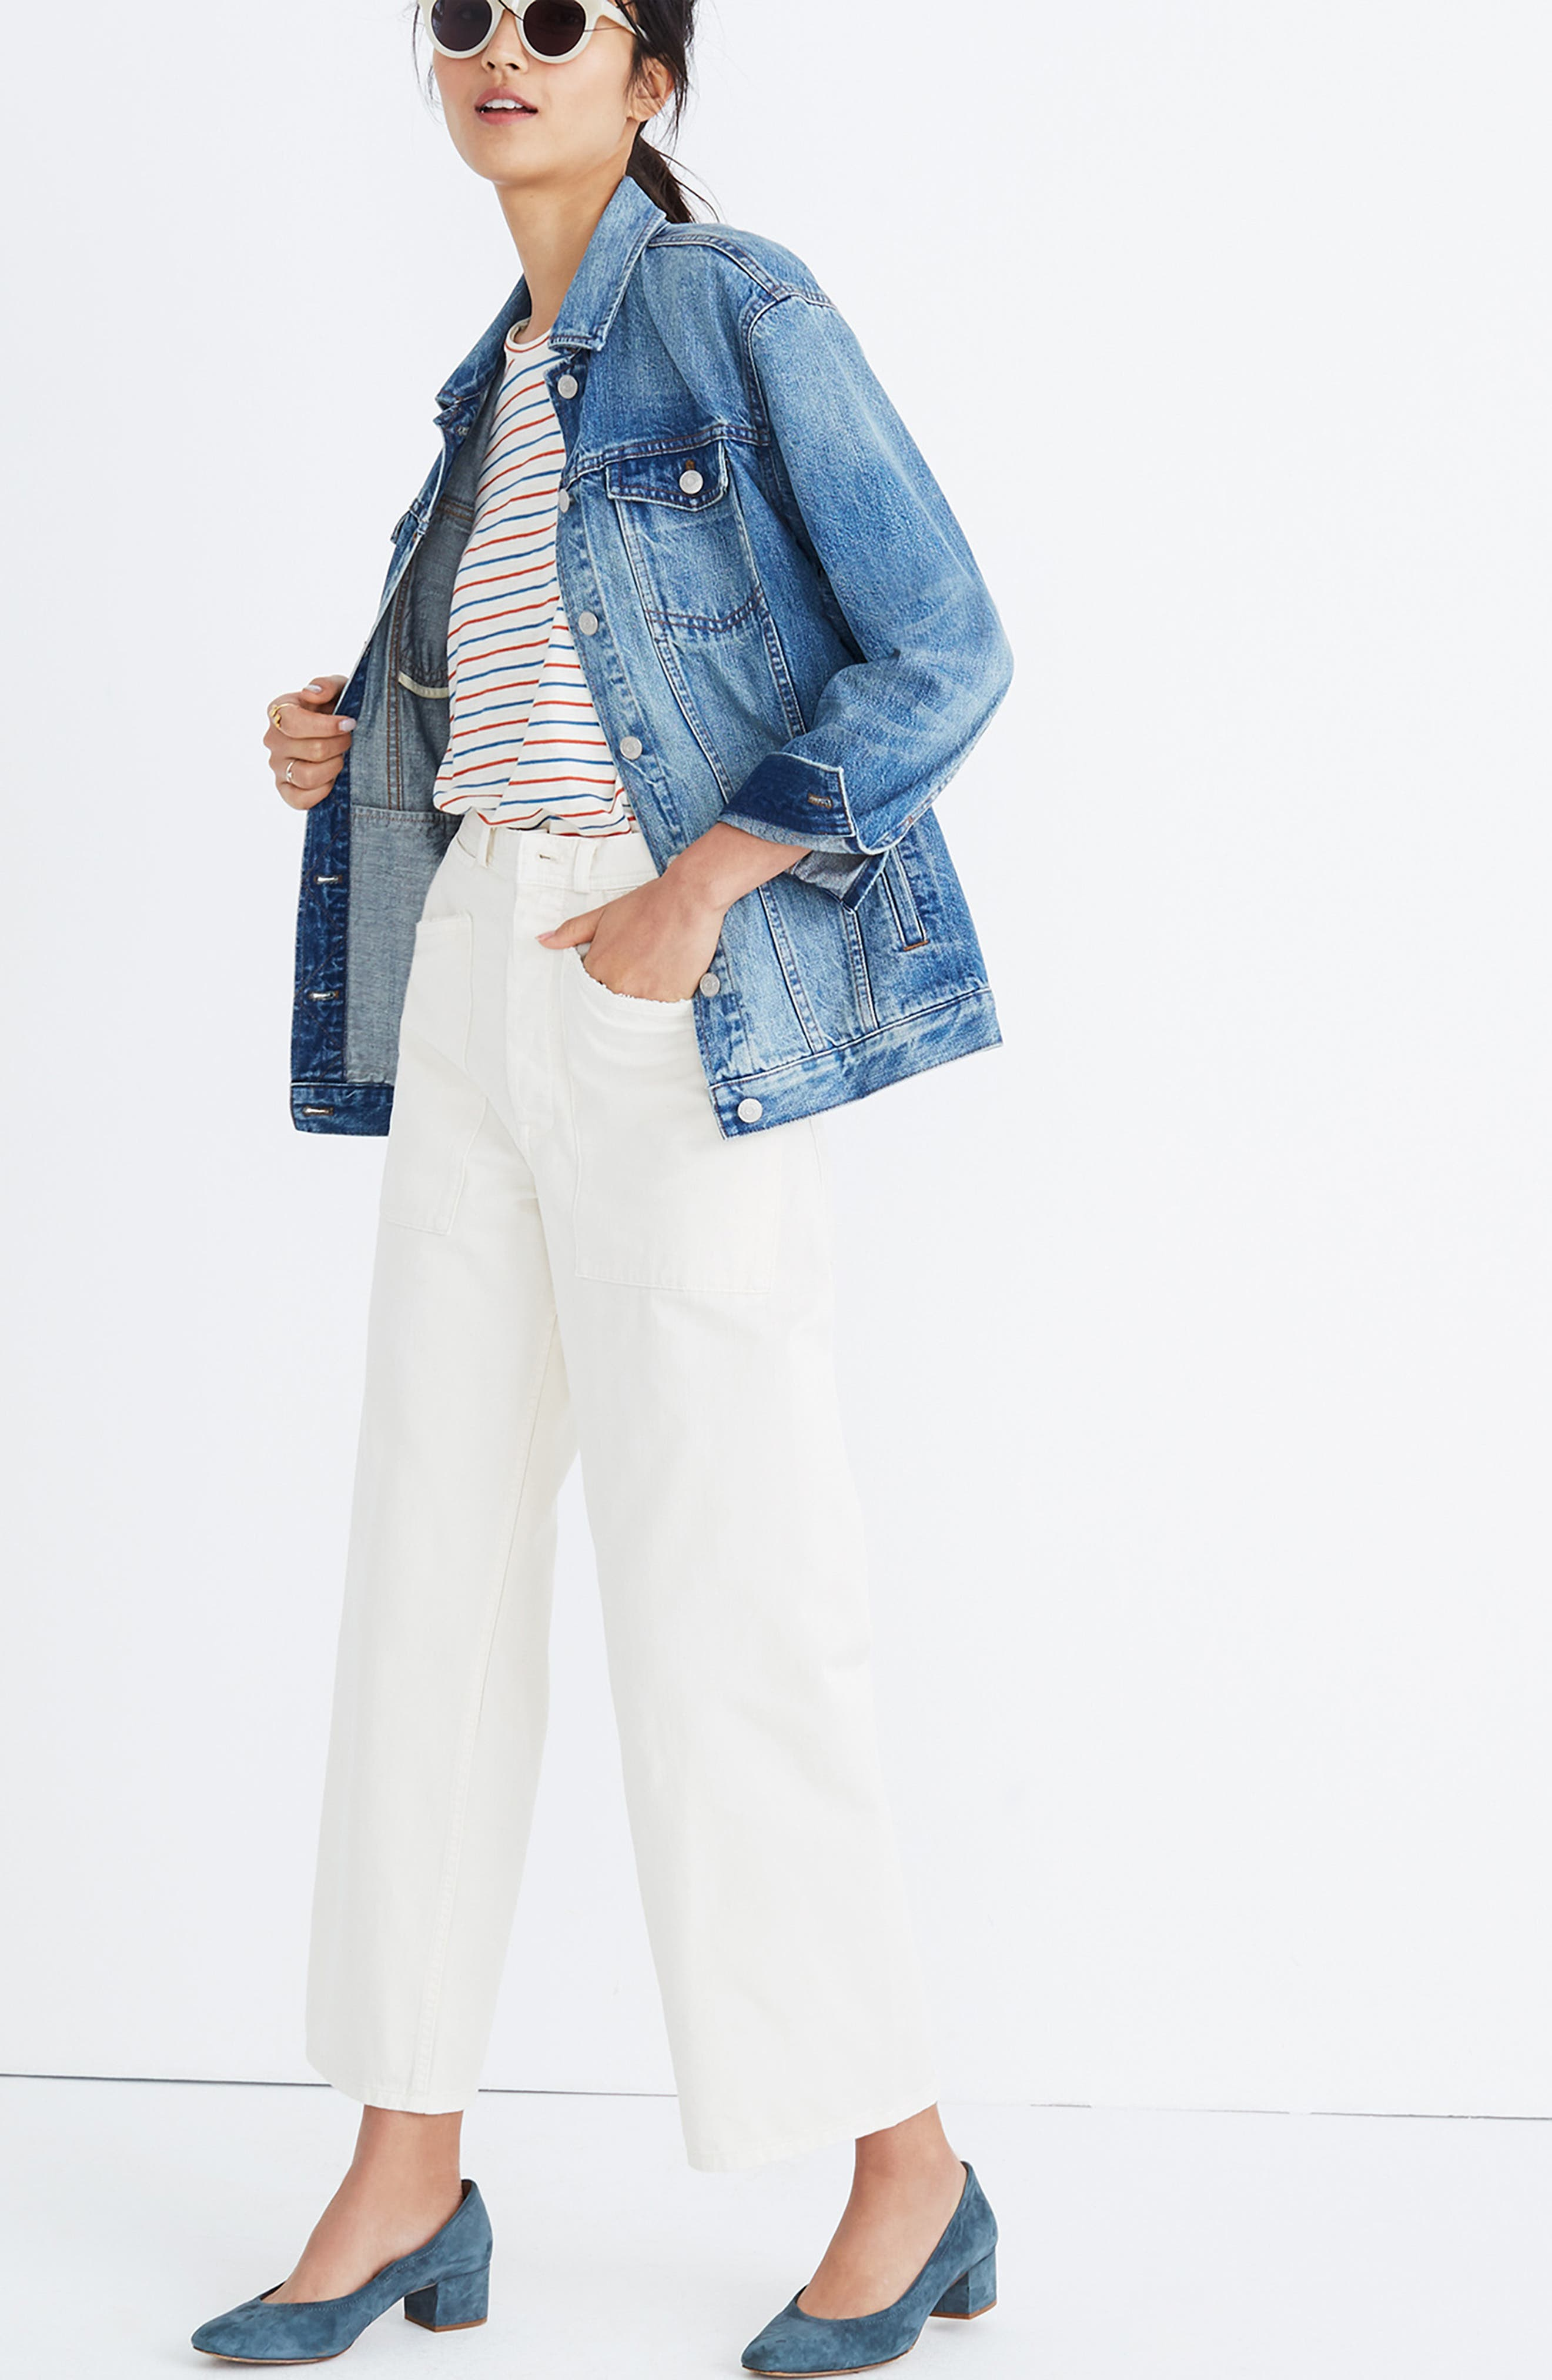 MADEWELL, Oversize Denim Jacket, Alternate thumbnail 6, color, CAPSTONE WASH